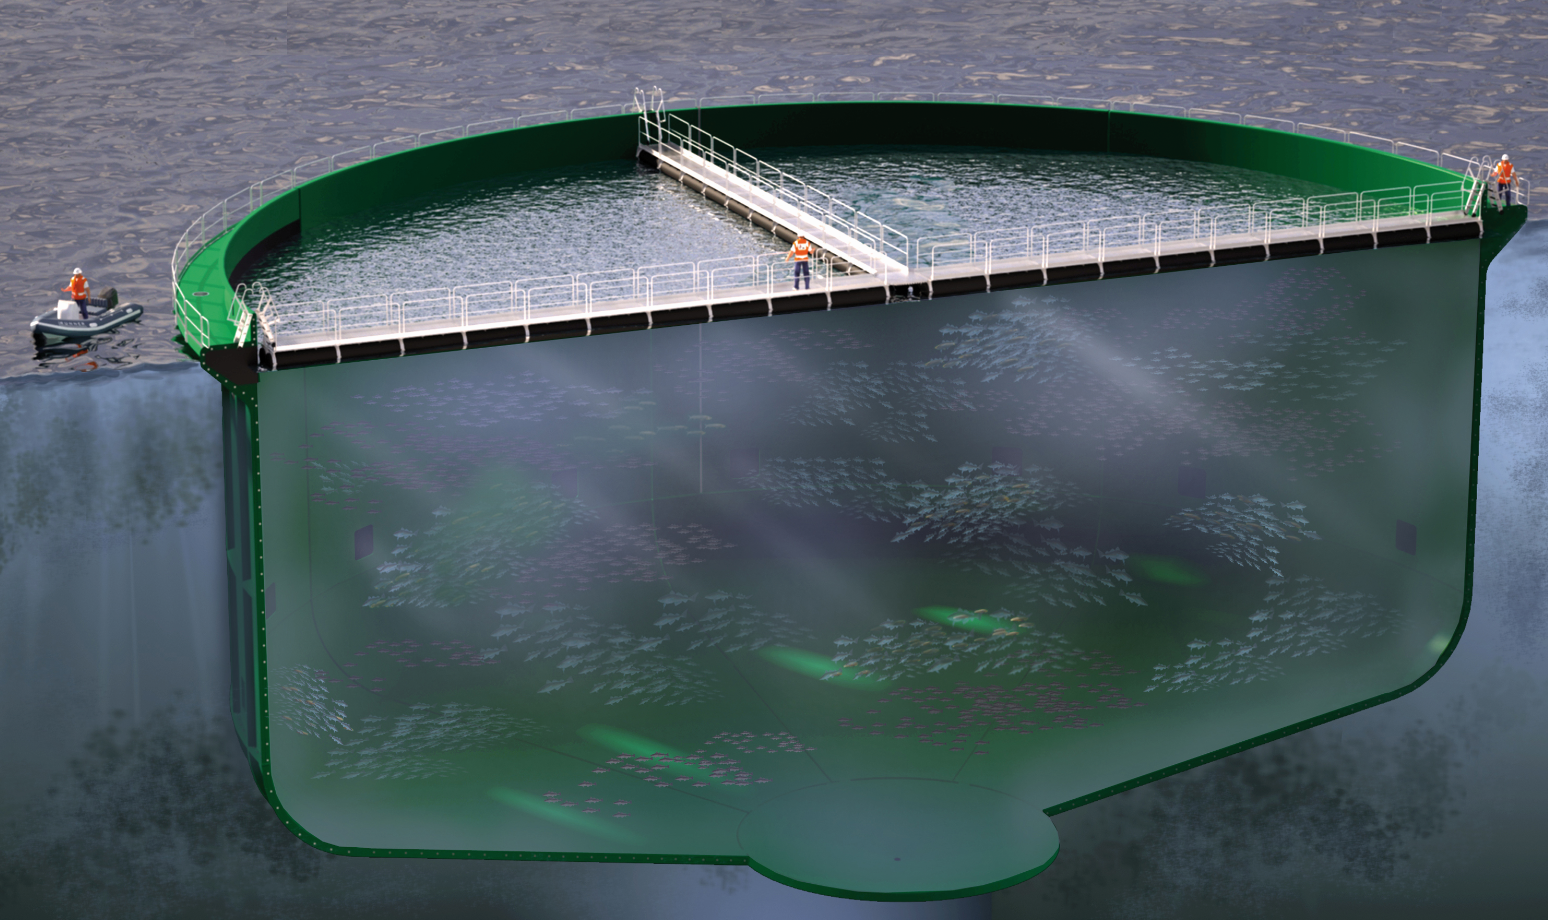 HighComps solution for offshore fish farming in aquaculture industry